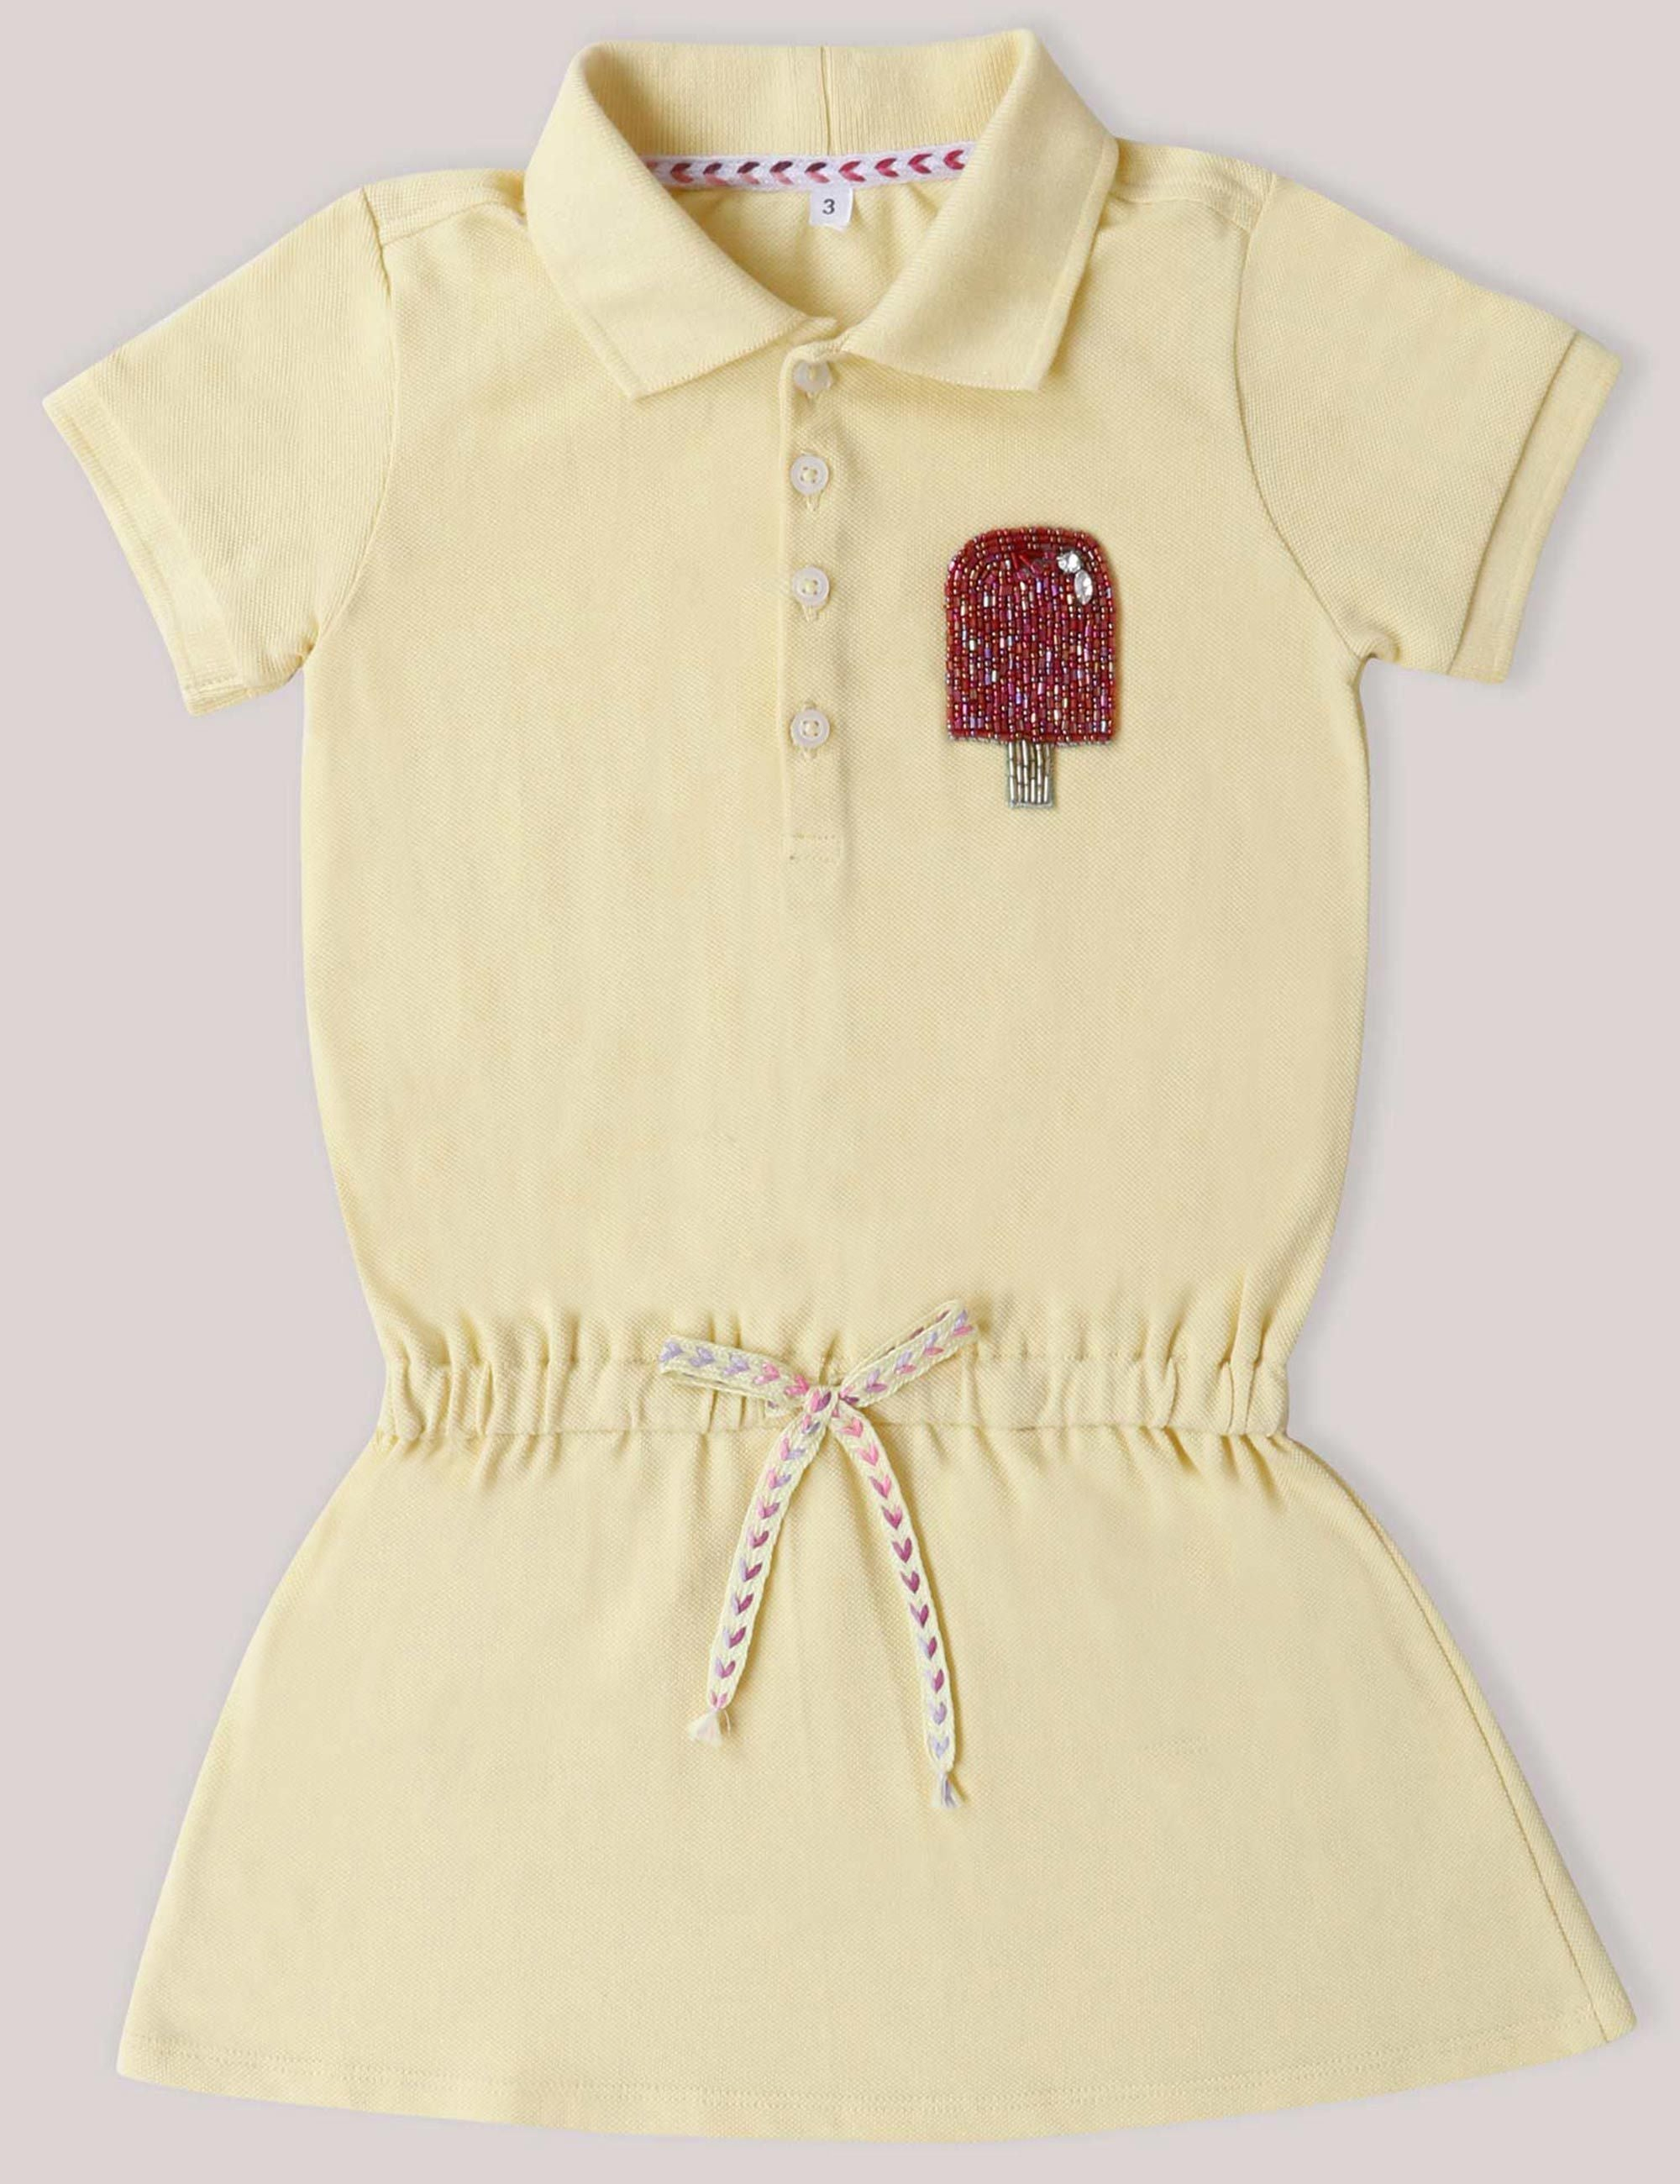 9e739be076 Girls Polo T-Shirt Dress with very Quirky Popsicle Patch On a Corner .